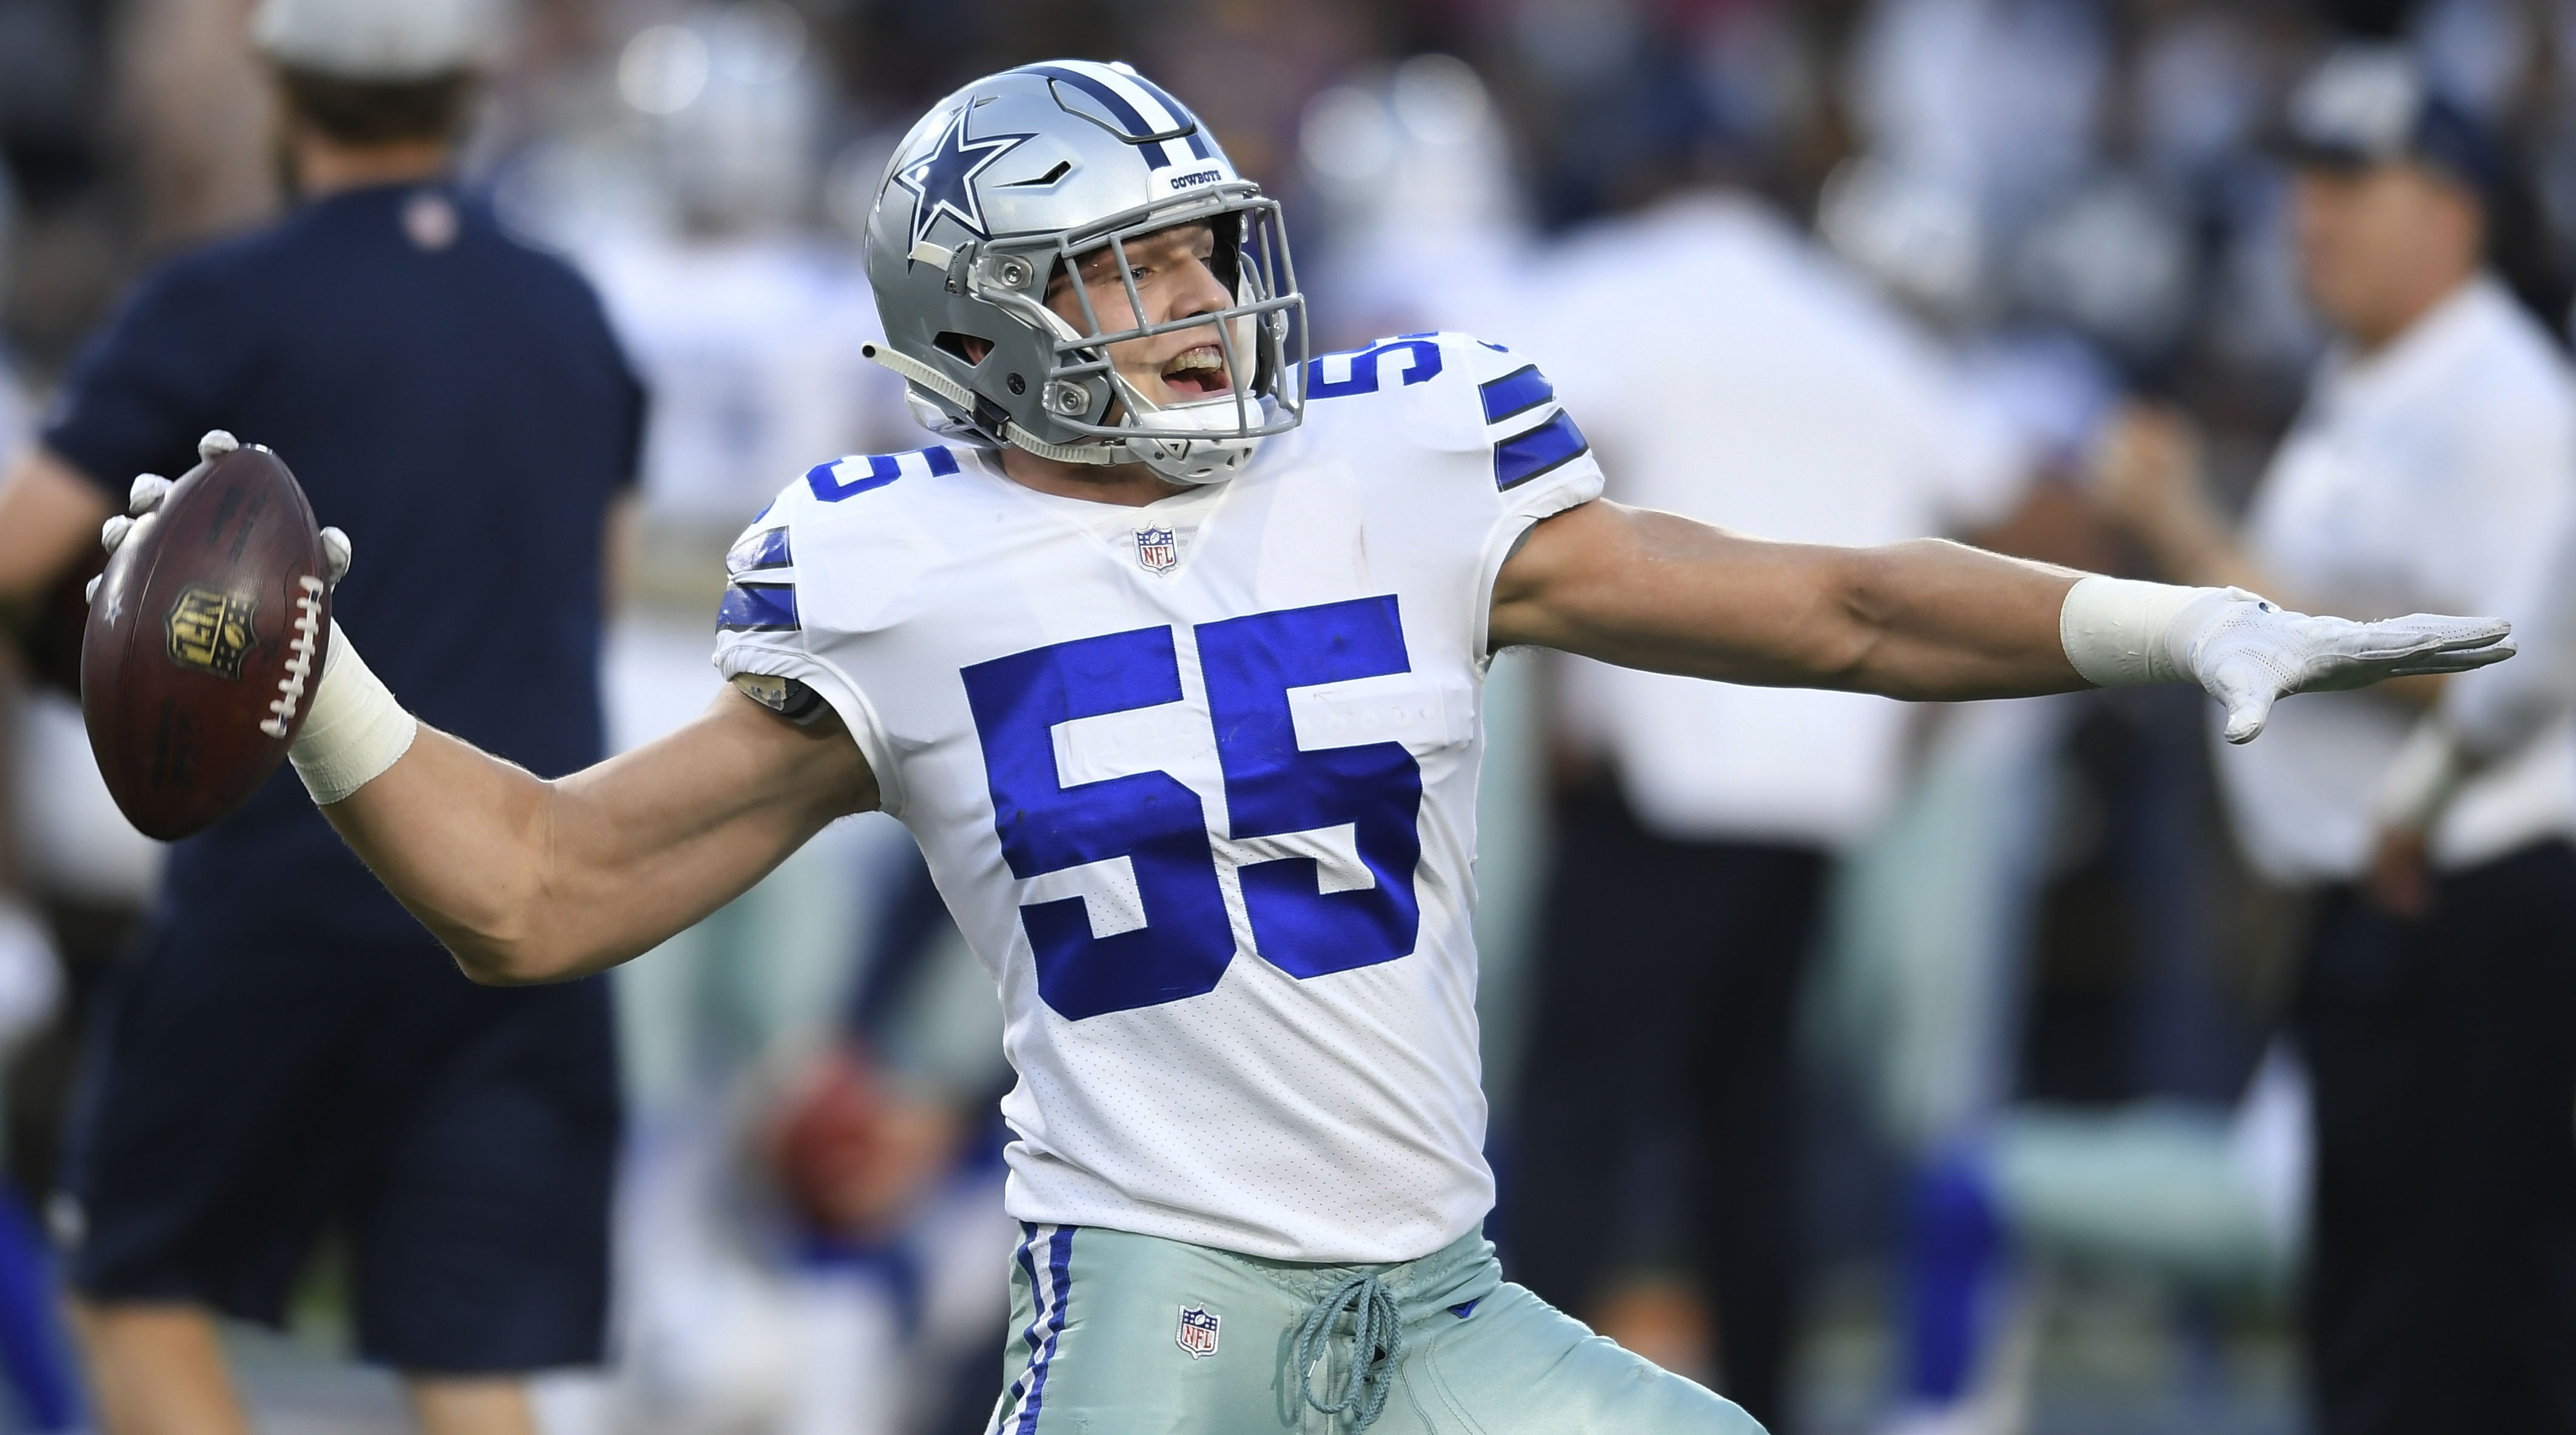 aa07a72ffd8 Cowboys' Leighton Vander Esch donates weight room to old high school |  SI.com